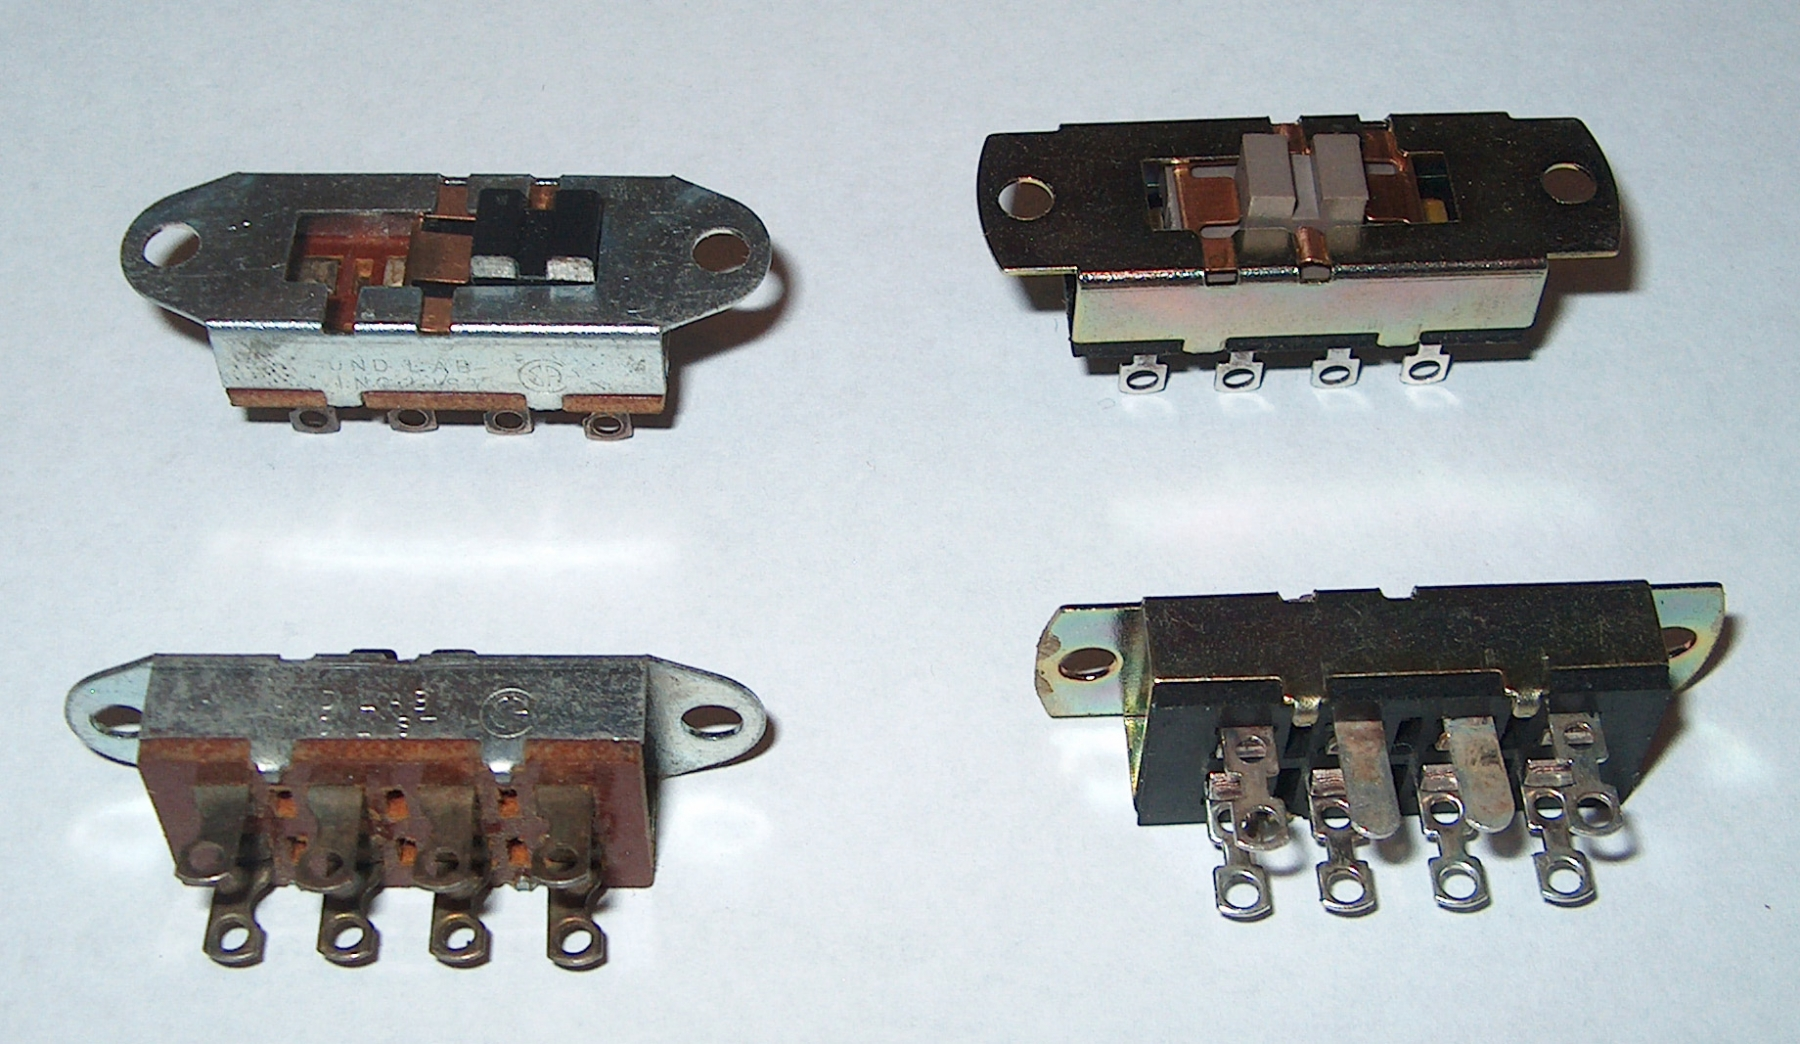 Ohms selector switch